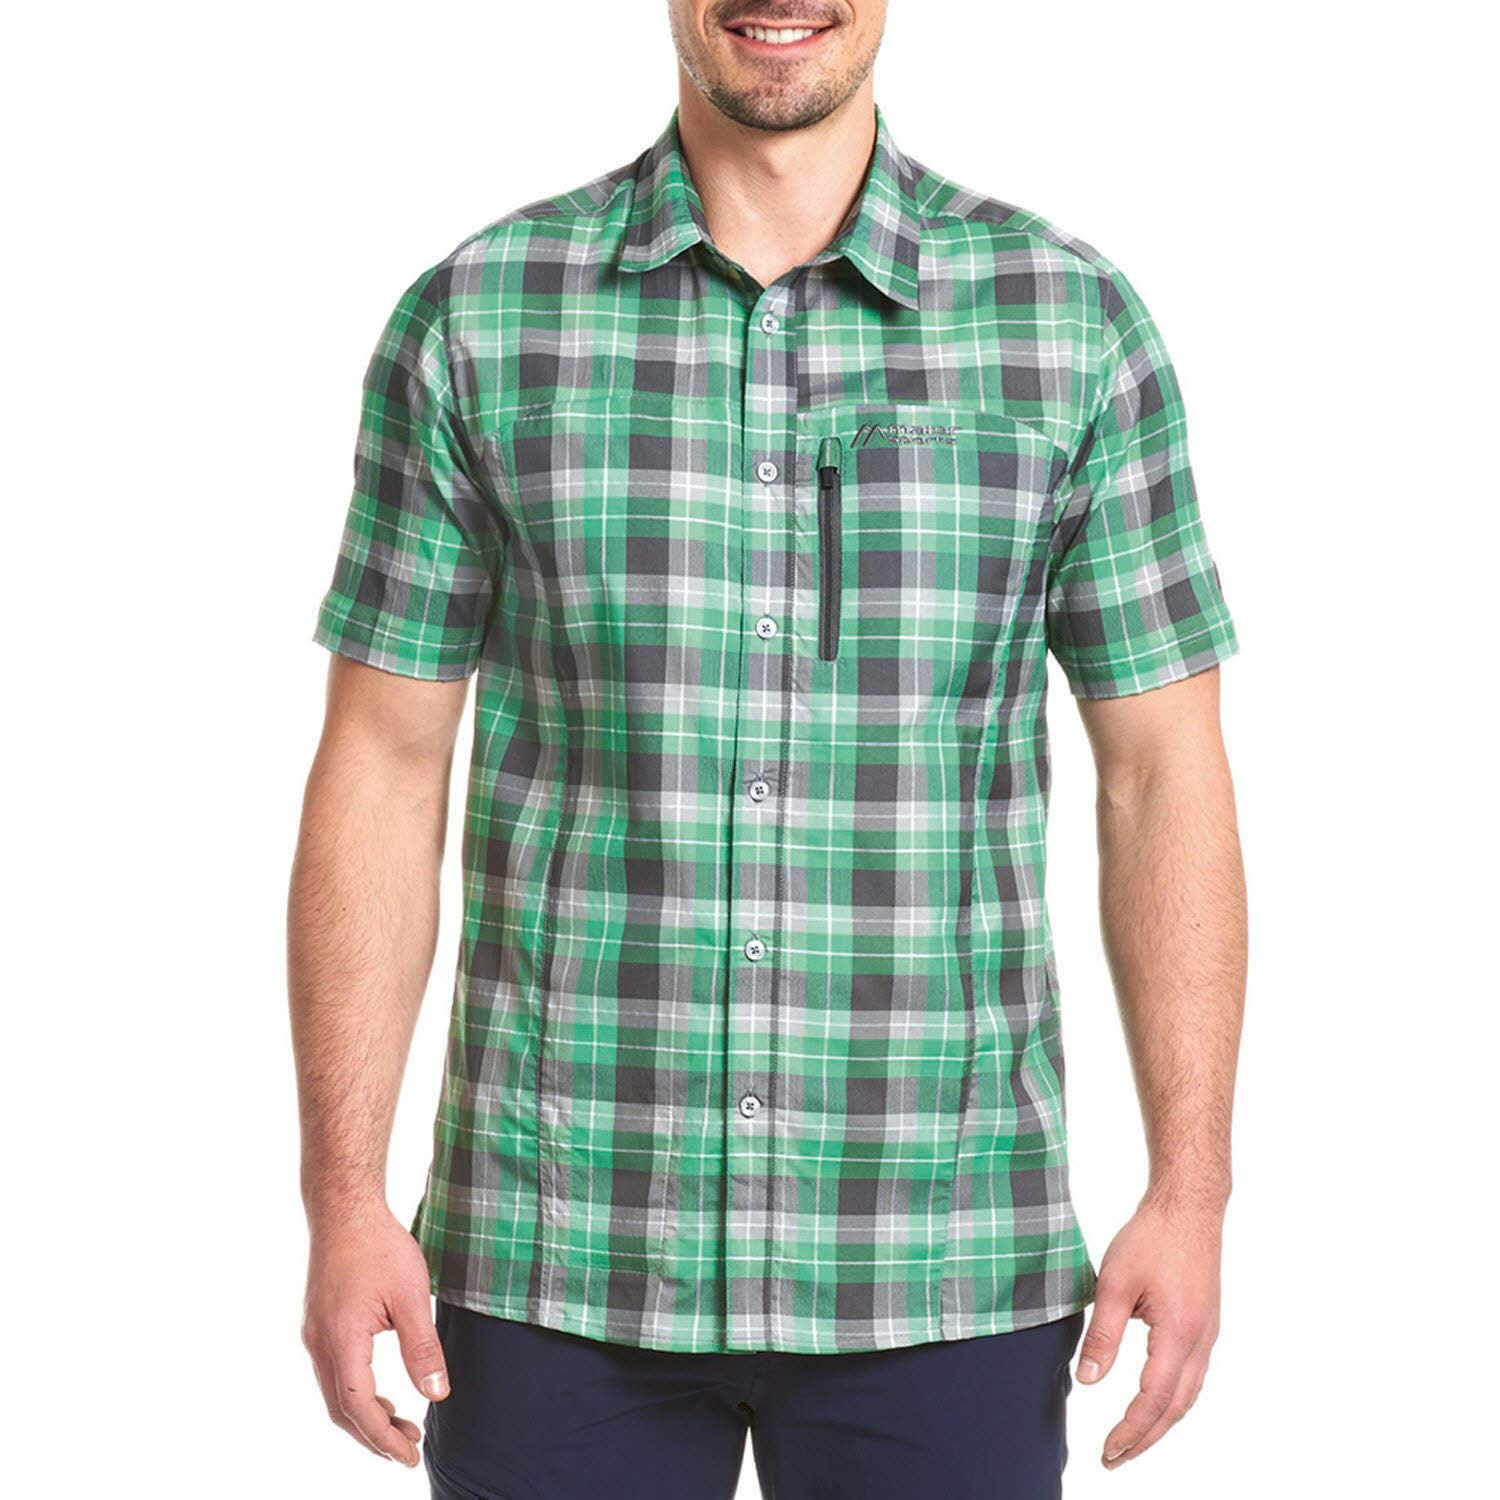 Maier Sports Herren Funktionshemd Madoc S/S green/grey check 58